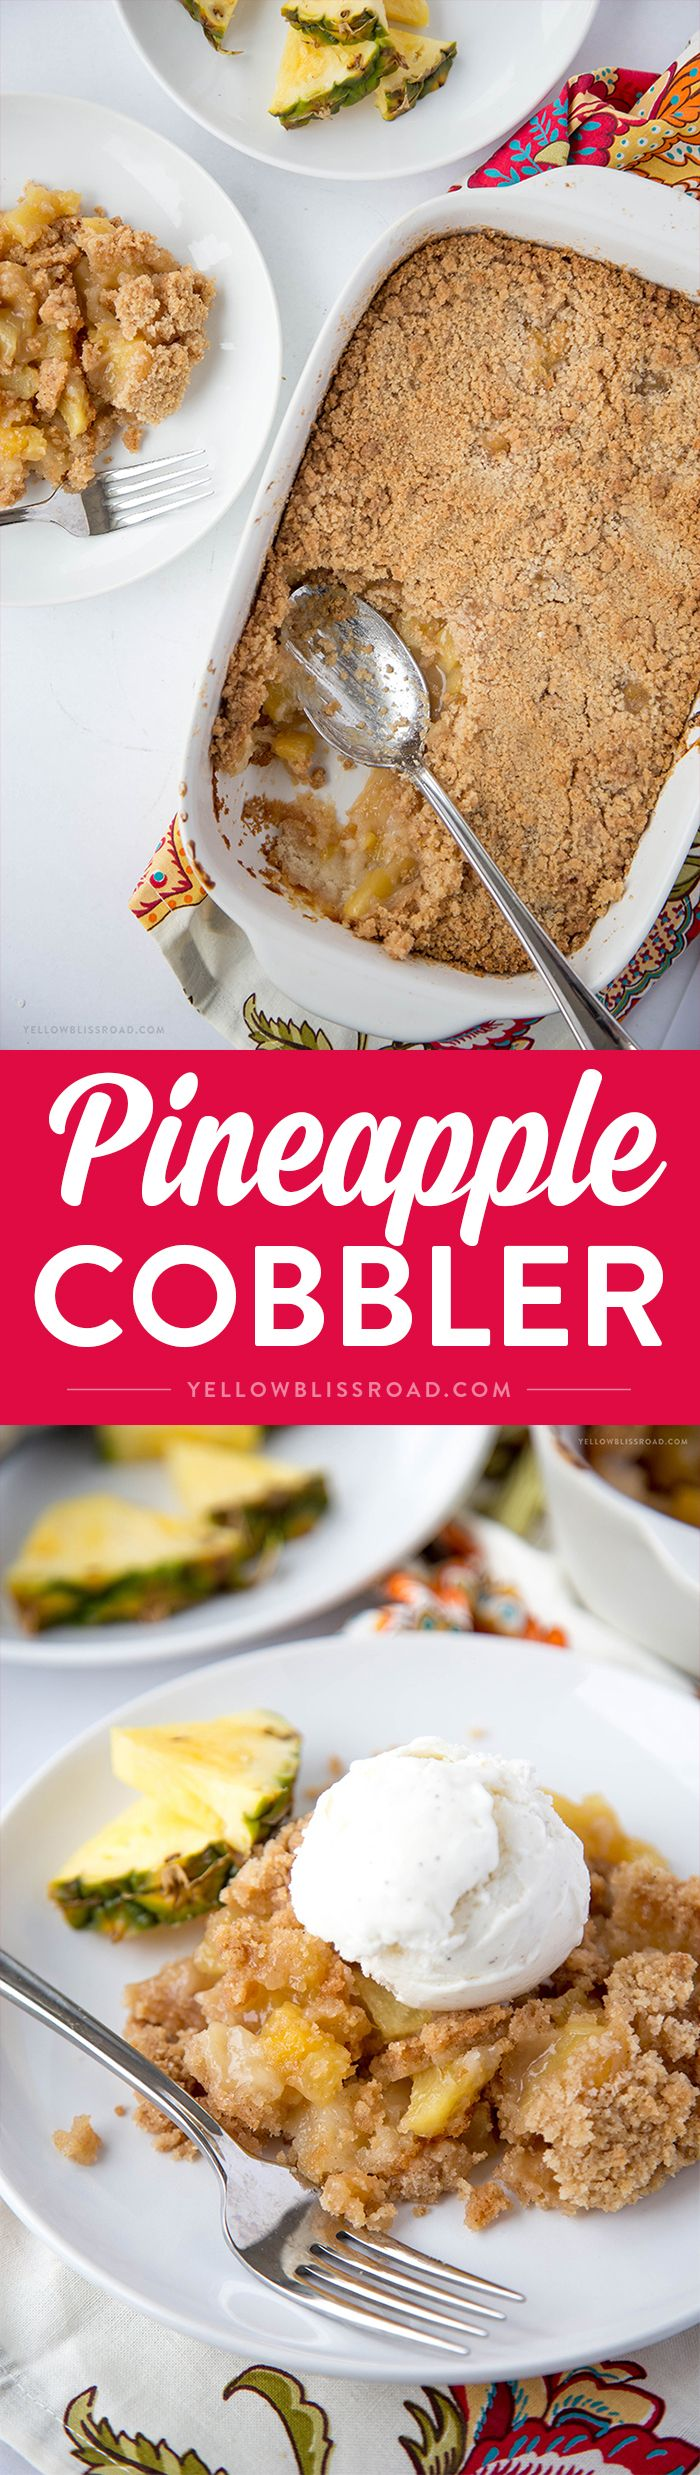 Pineapple Cobbler - a Hawaiian inspired dessert straight from Disney's Aulani Resort!